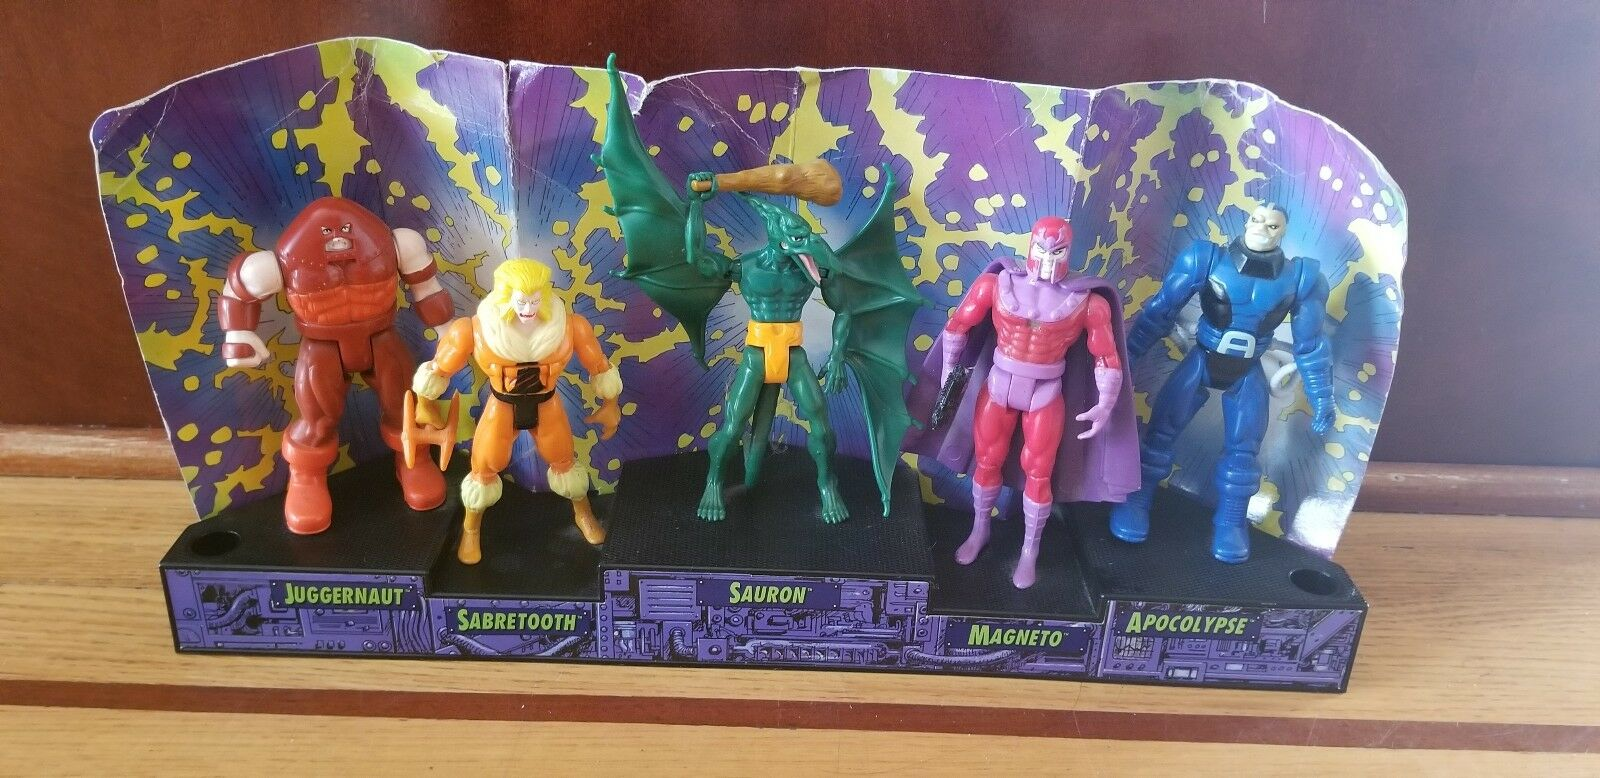 Marvel Vintage 1993 Lot of 5 X-Men Action Figures By Toy Biz on the Stand